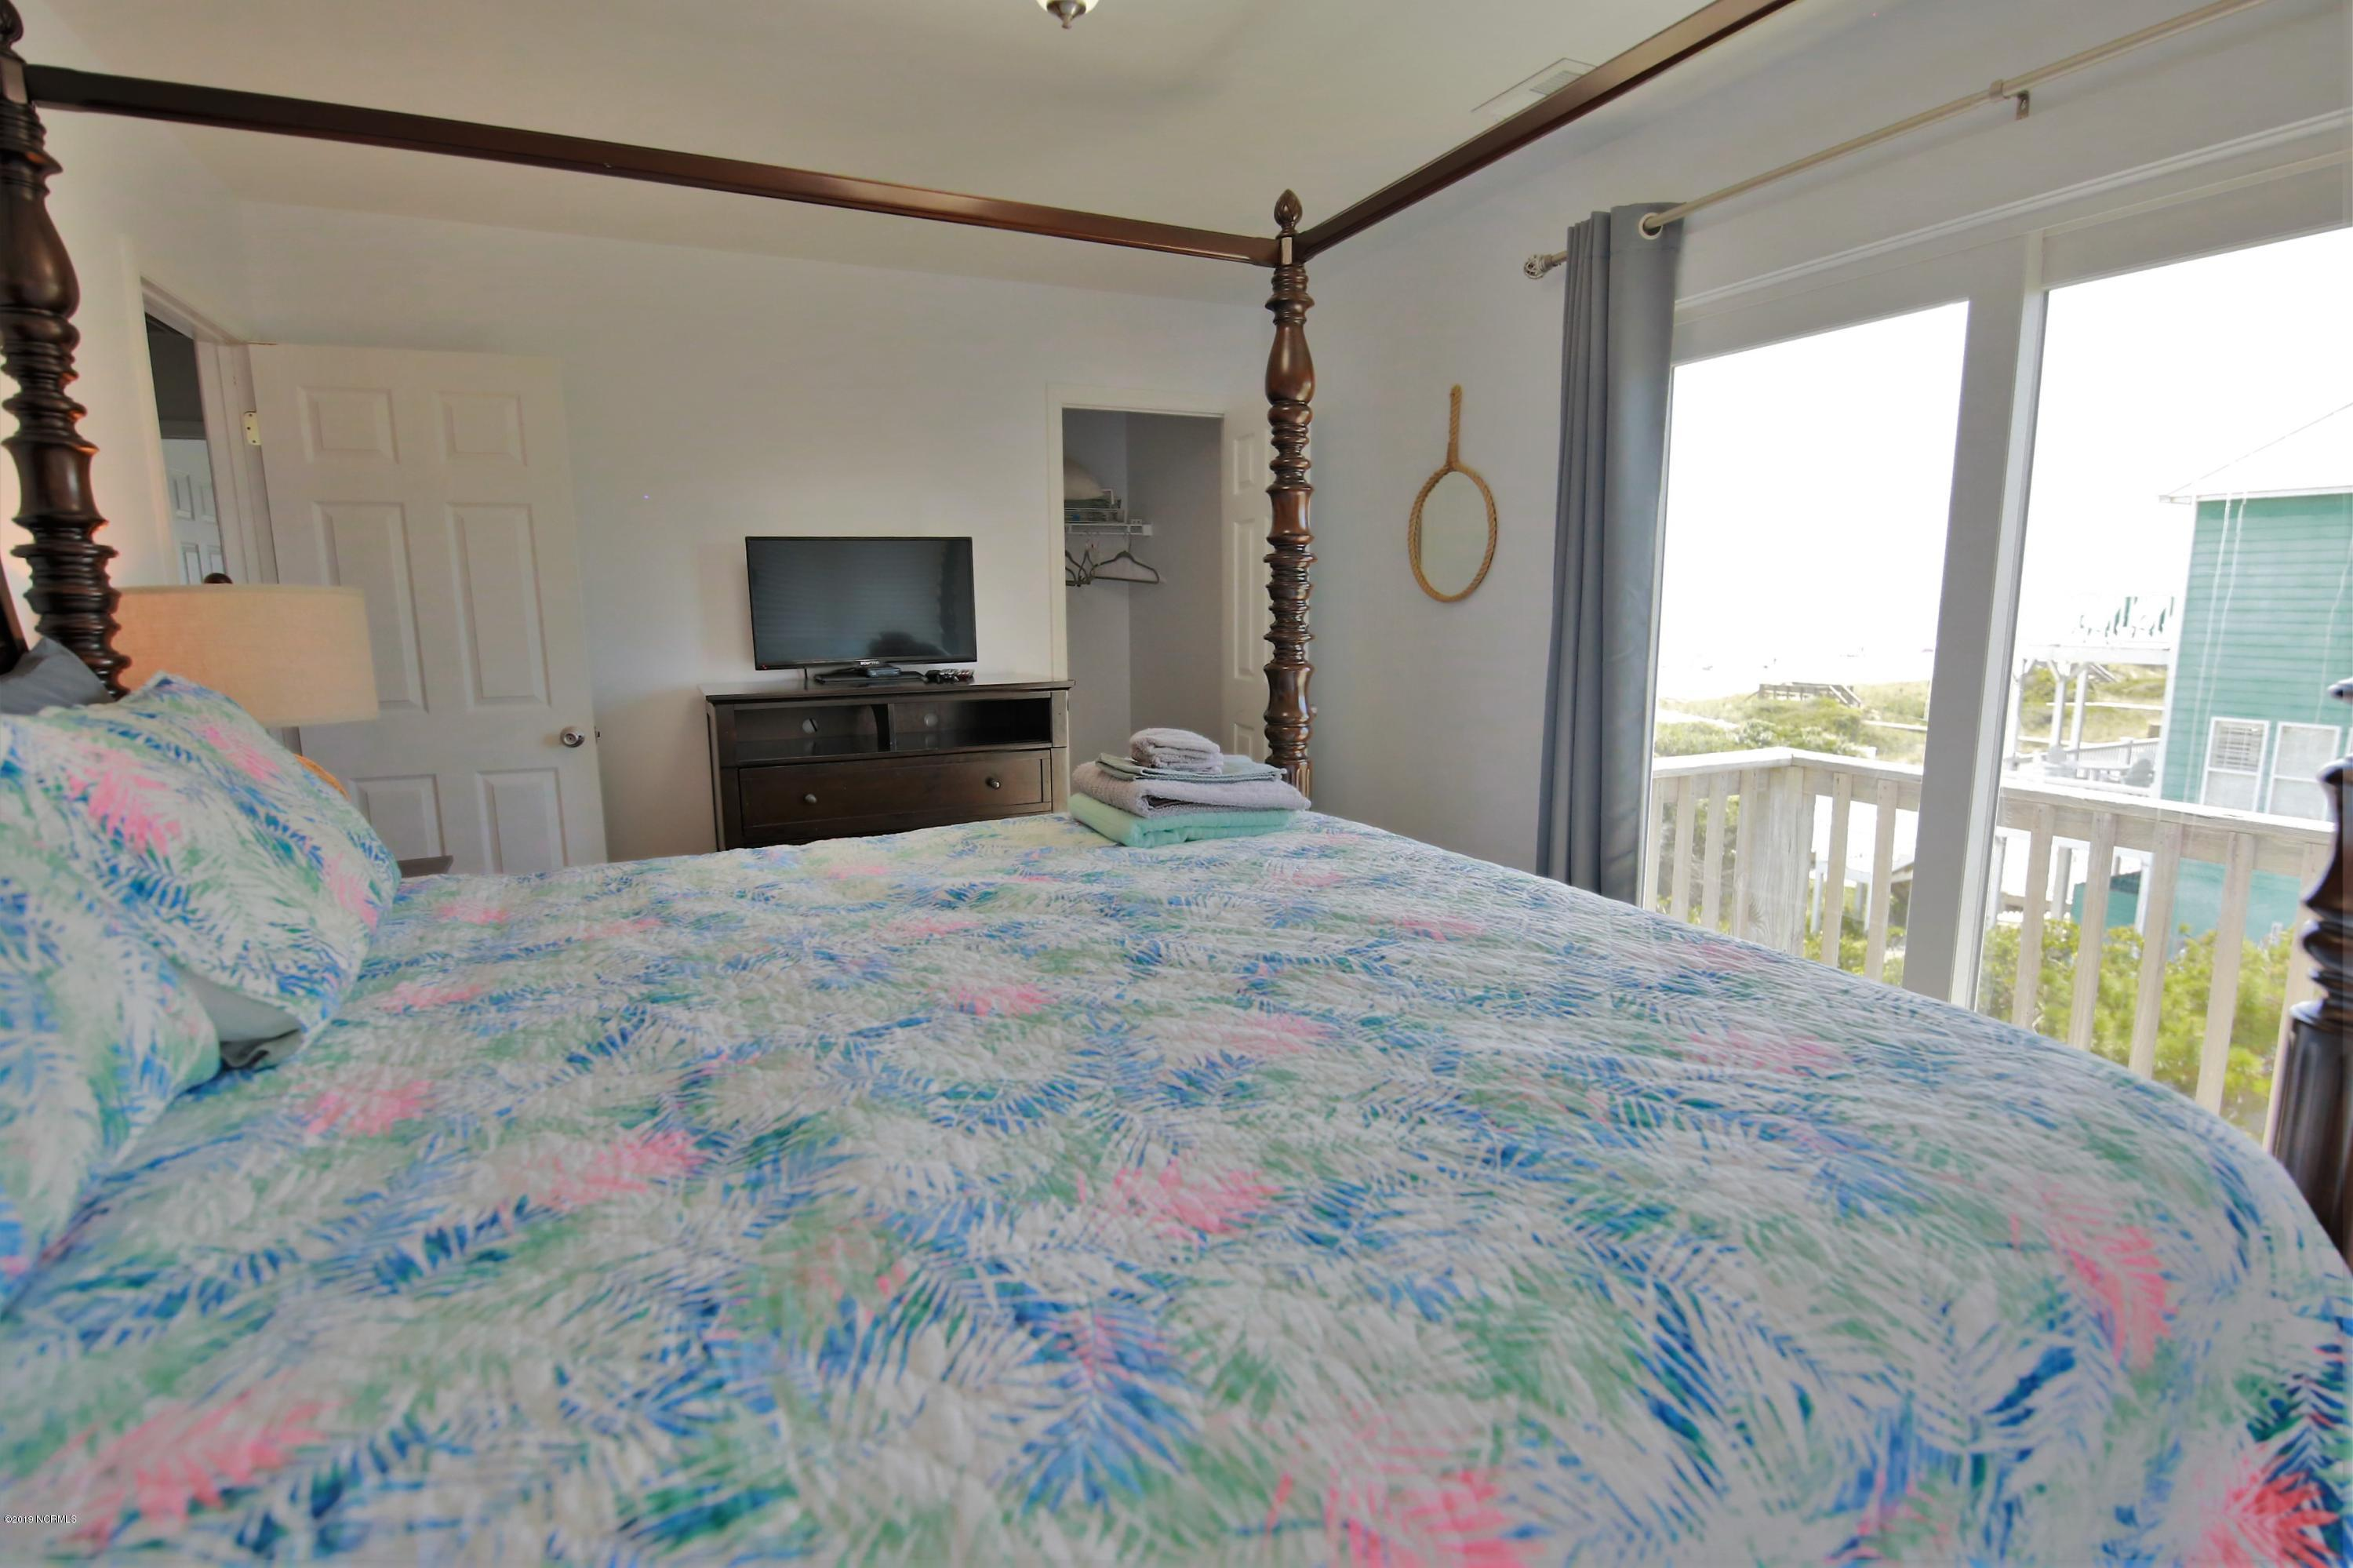 9917 Shipwreck Court, Emerald Isle, North Carolina 28594, 3 Bedrooms Bedrooms, 6 Rooms Rooms,3 BathroomsBathrooms,Condominium,For sale,Shipwreck,100028560